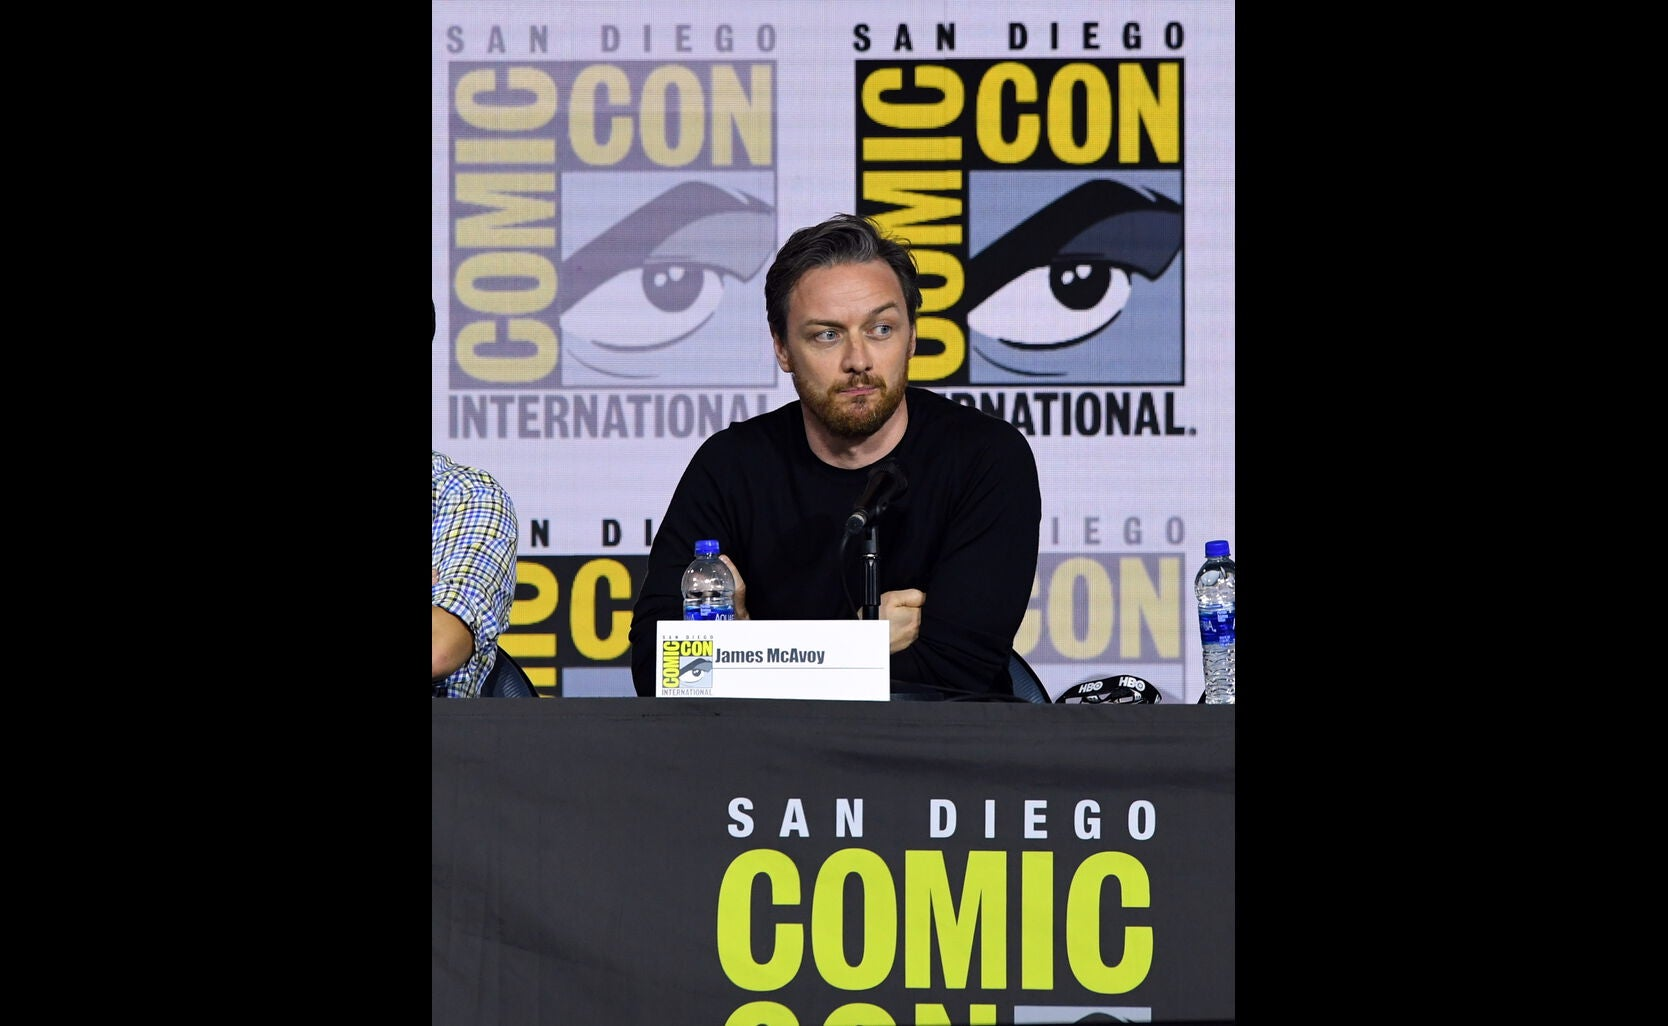 James McAvoy at SDCC 2019